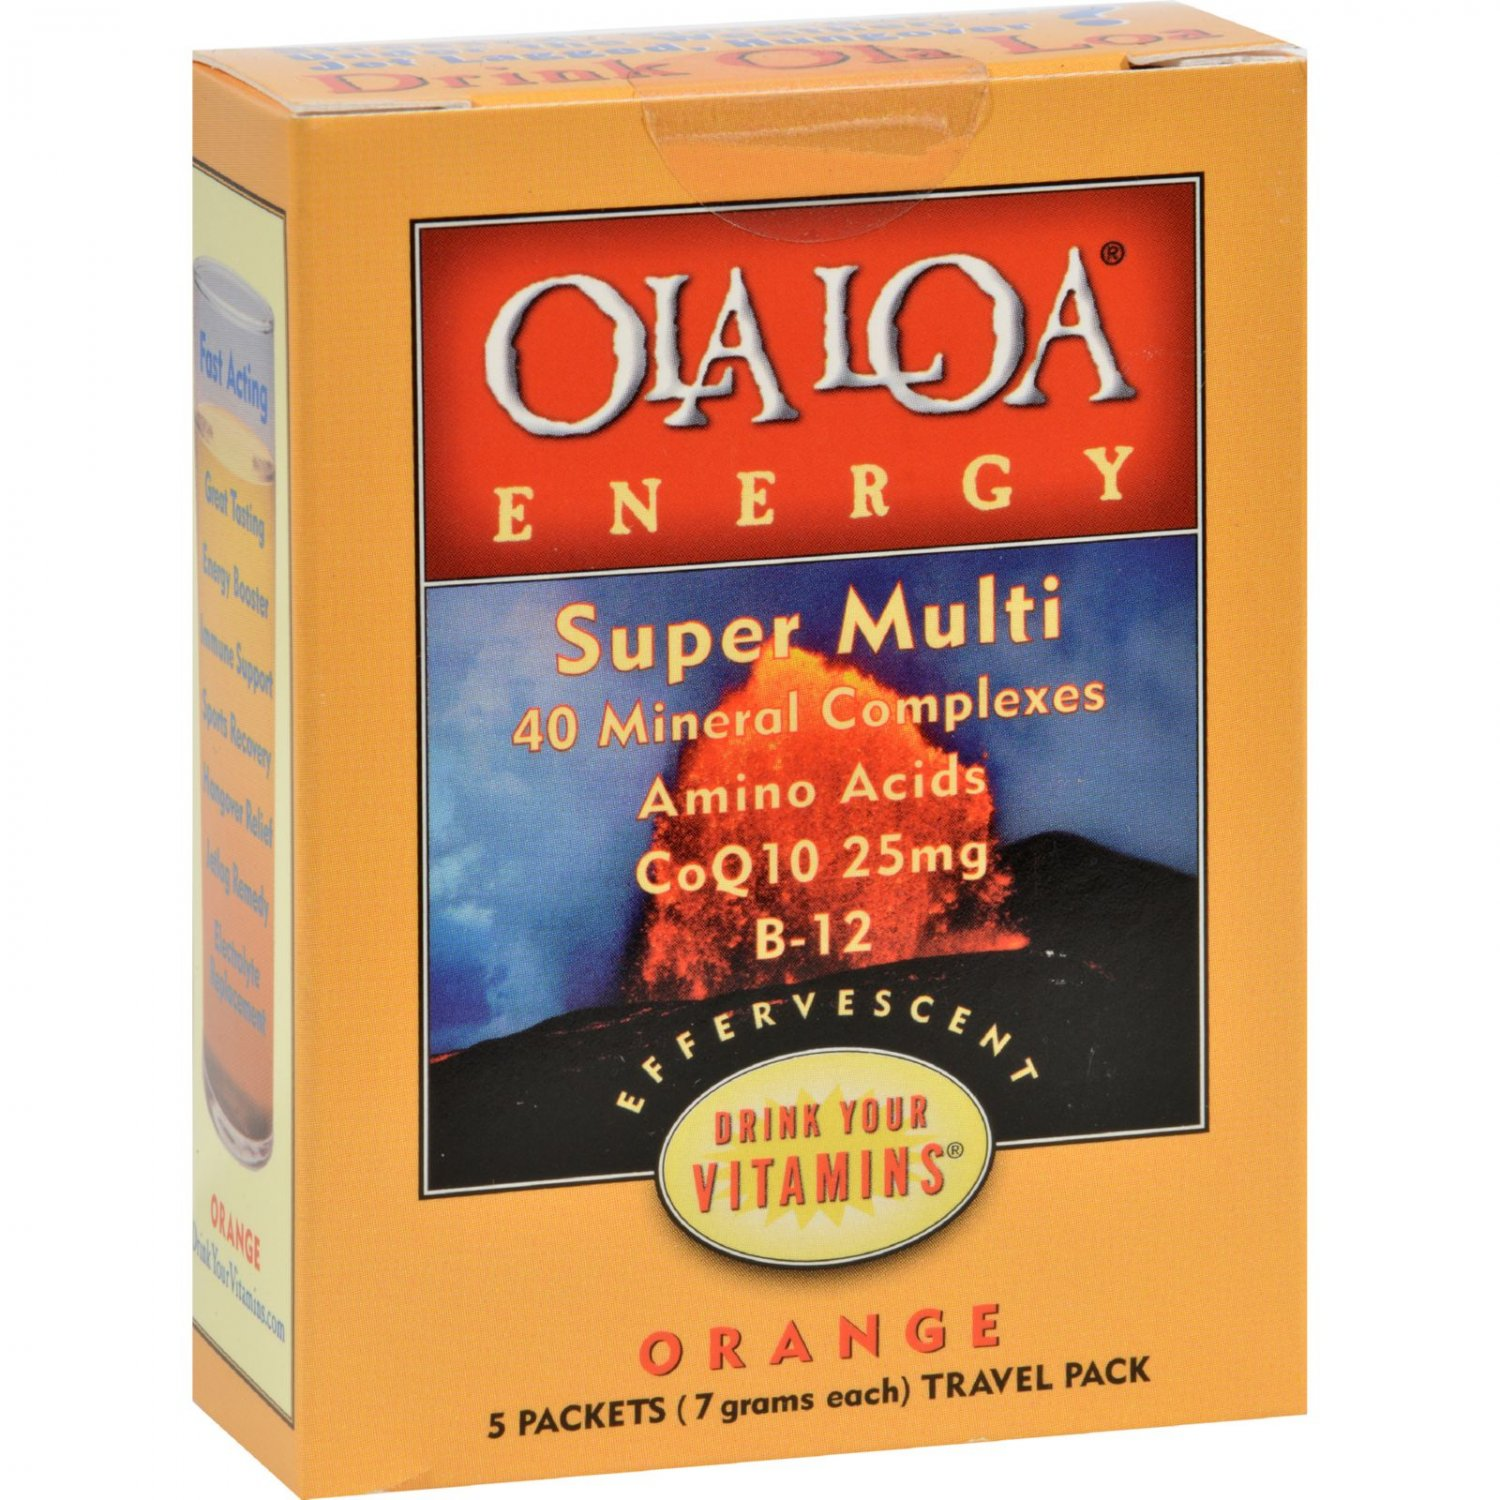 Ola Loa Energy Orange - 5 Packets